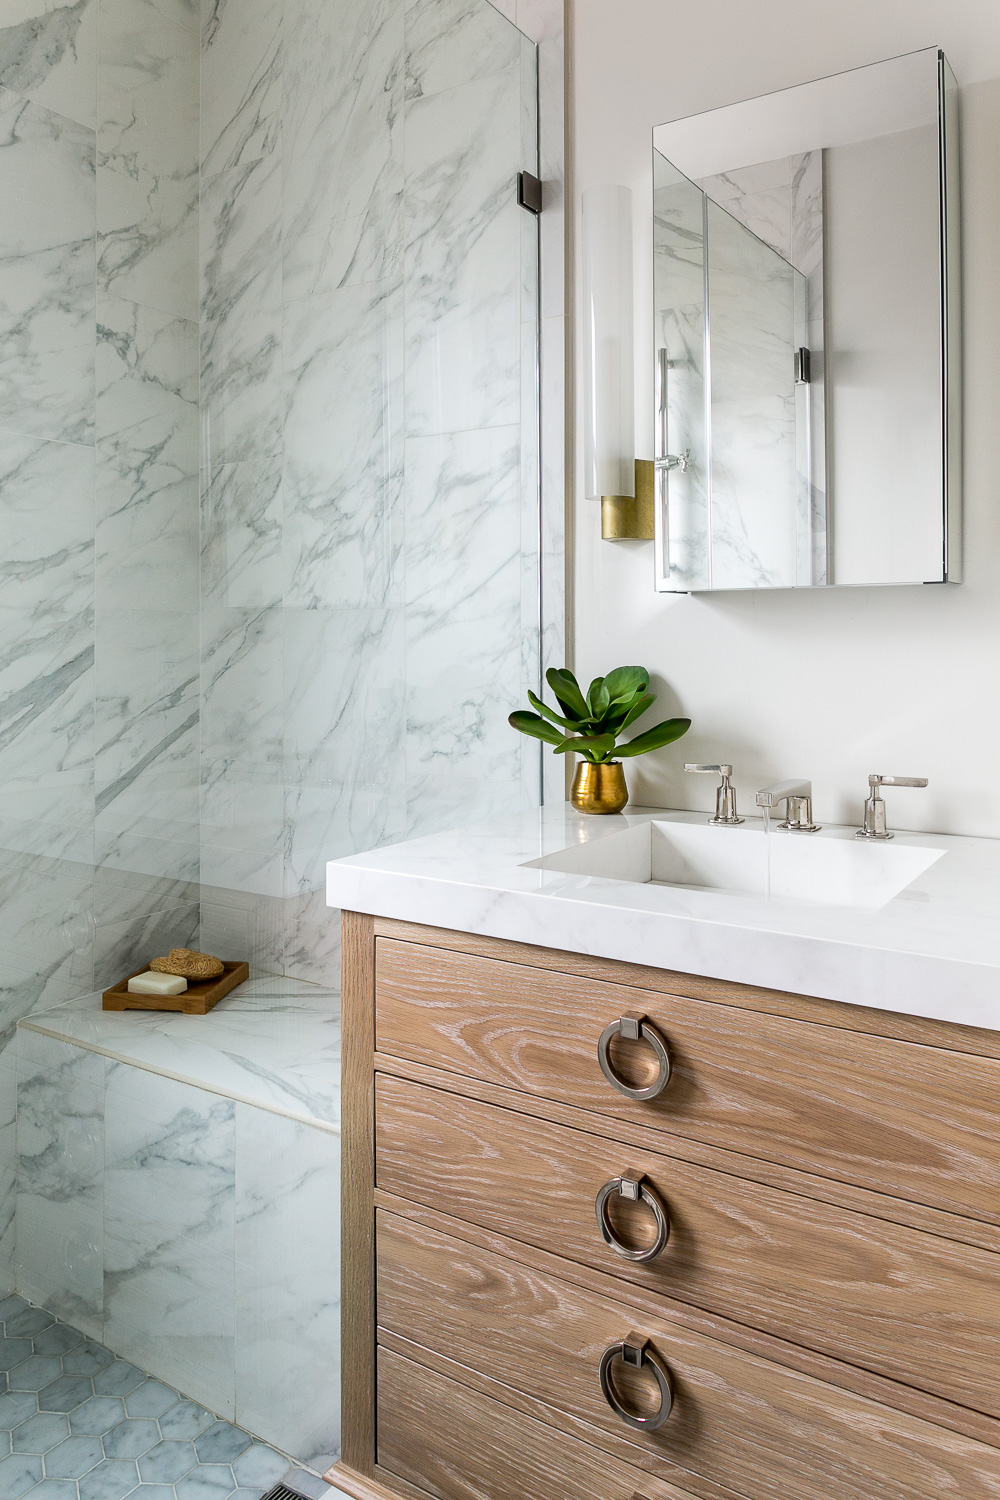 Bathroom Design Trends Making A Surprising Comeback In 2019 Real Simple